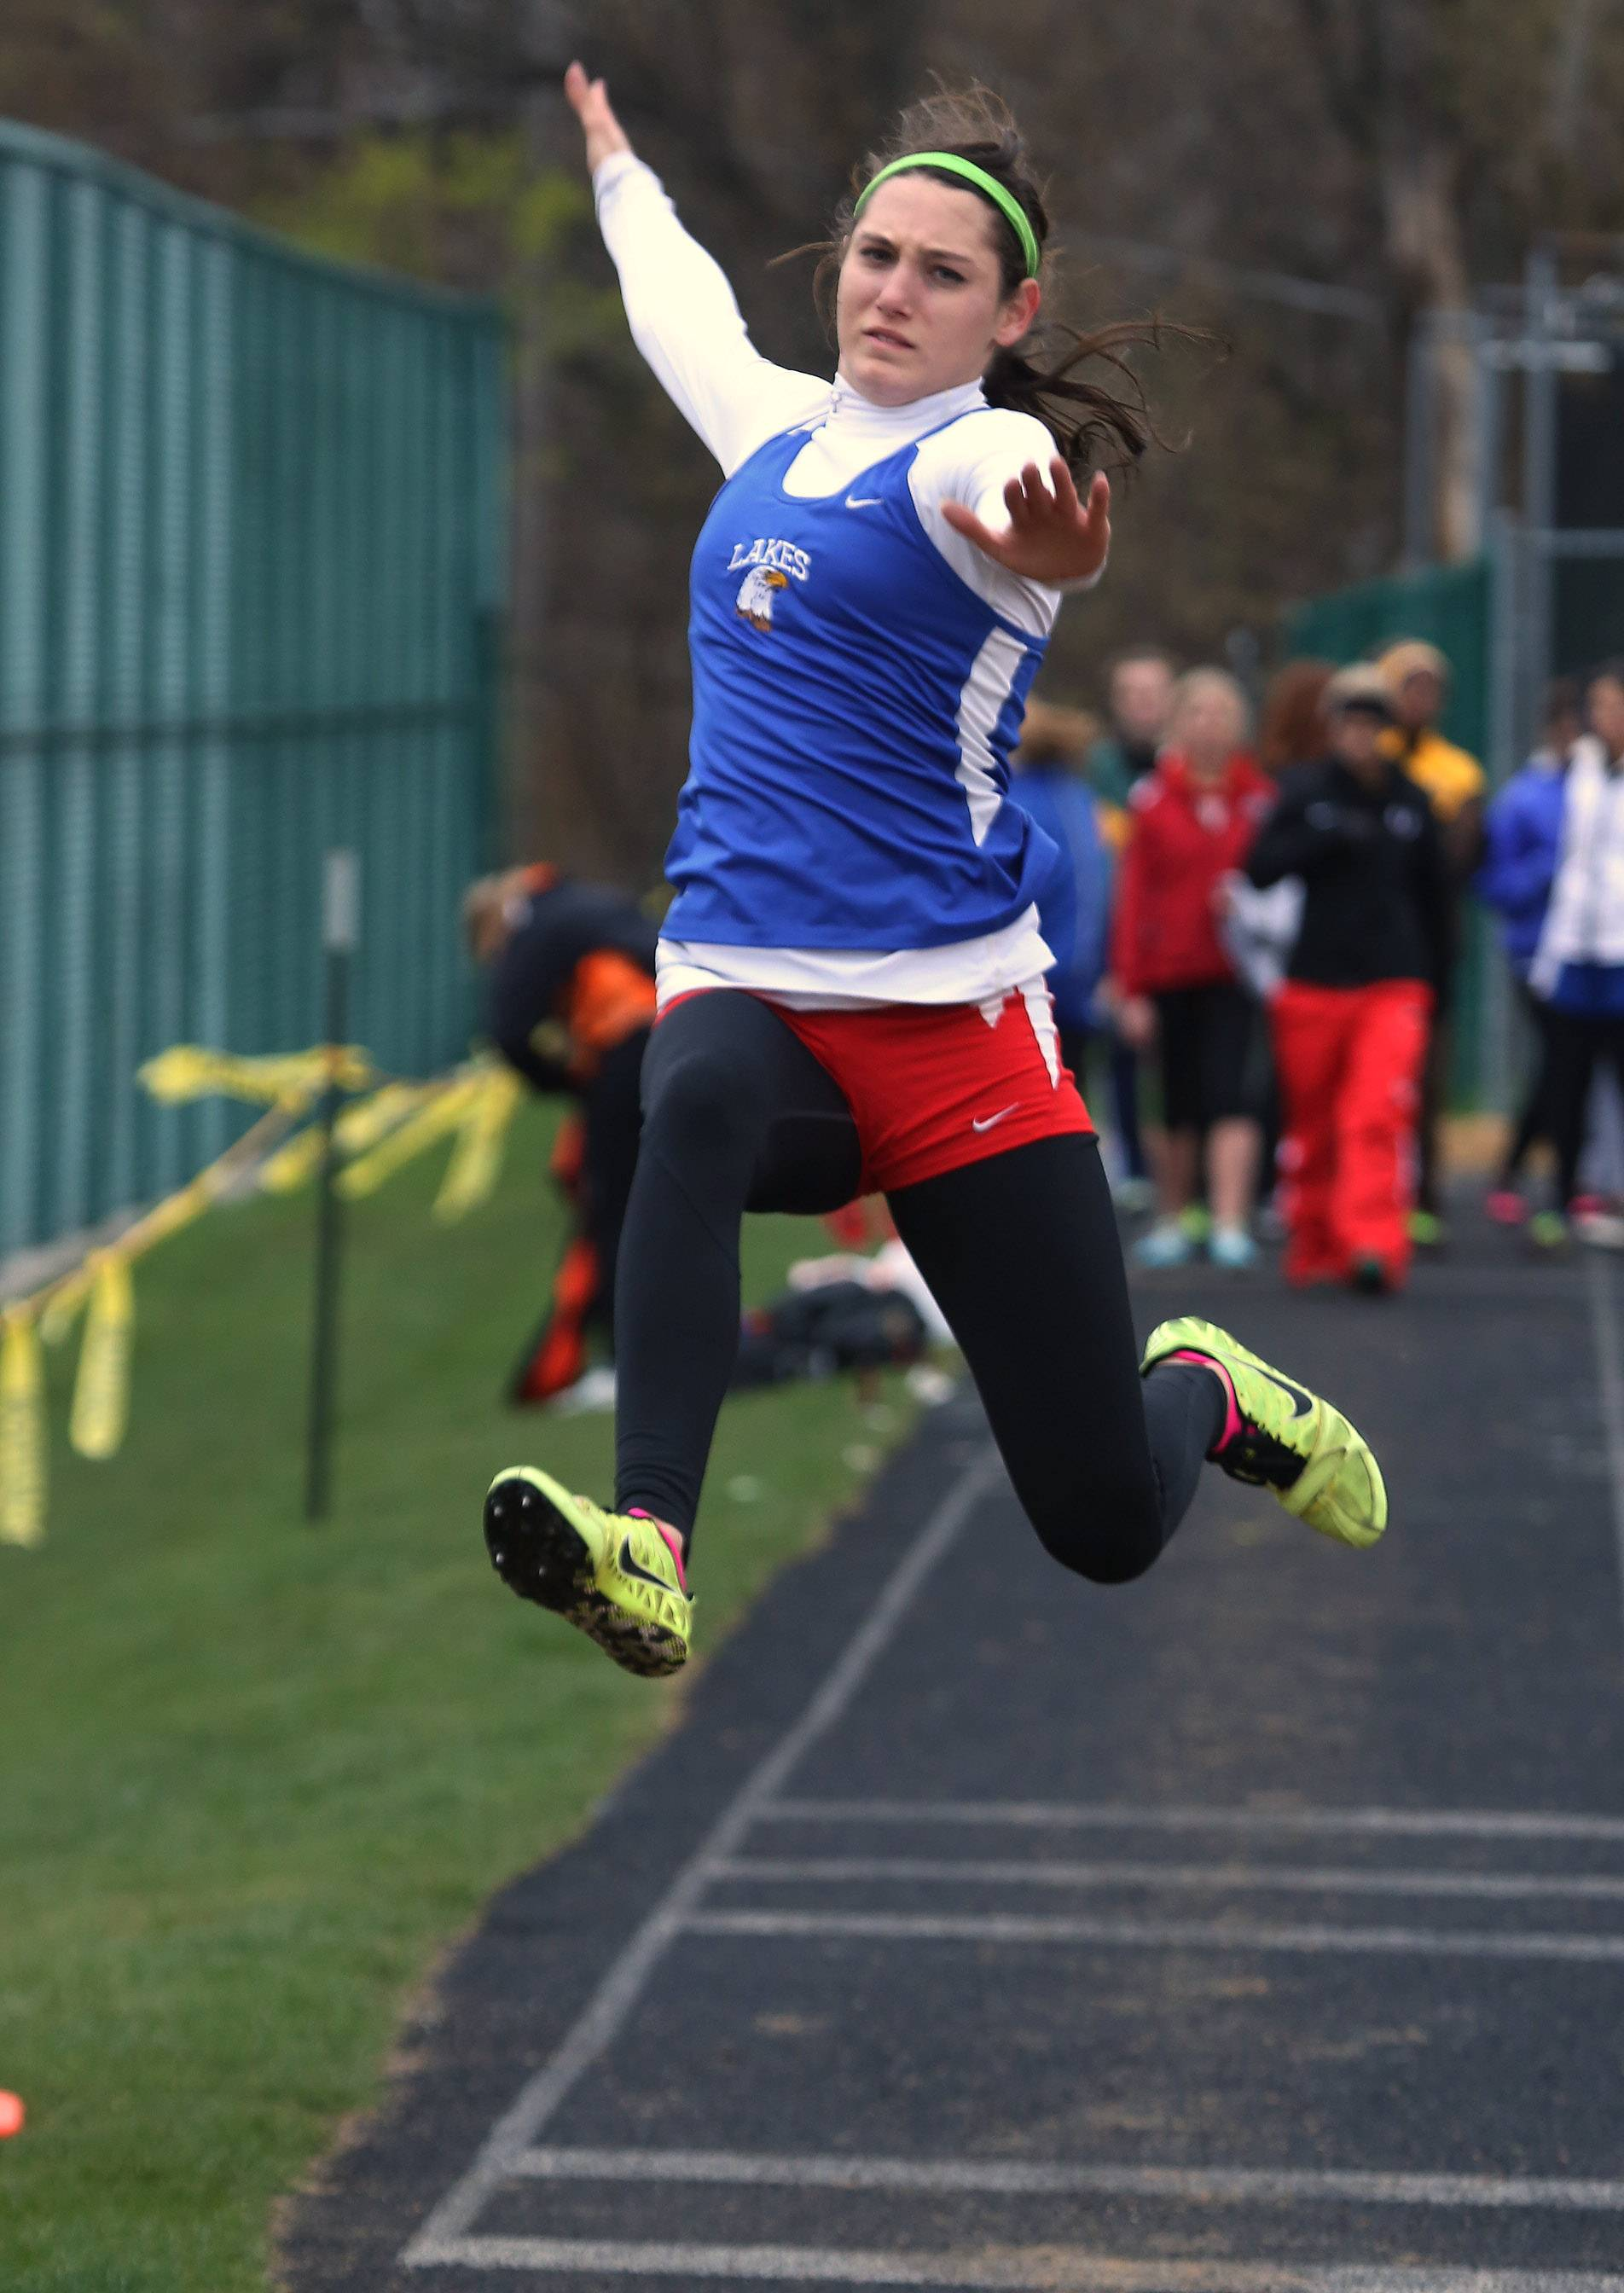 Lakes' Brittani Griesbaum competes in the long jump during the Lake County Invite on Thursday at Grayslake Central.